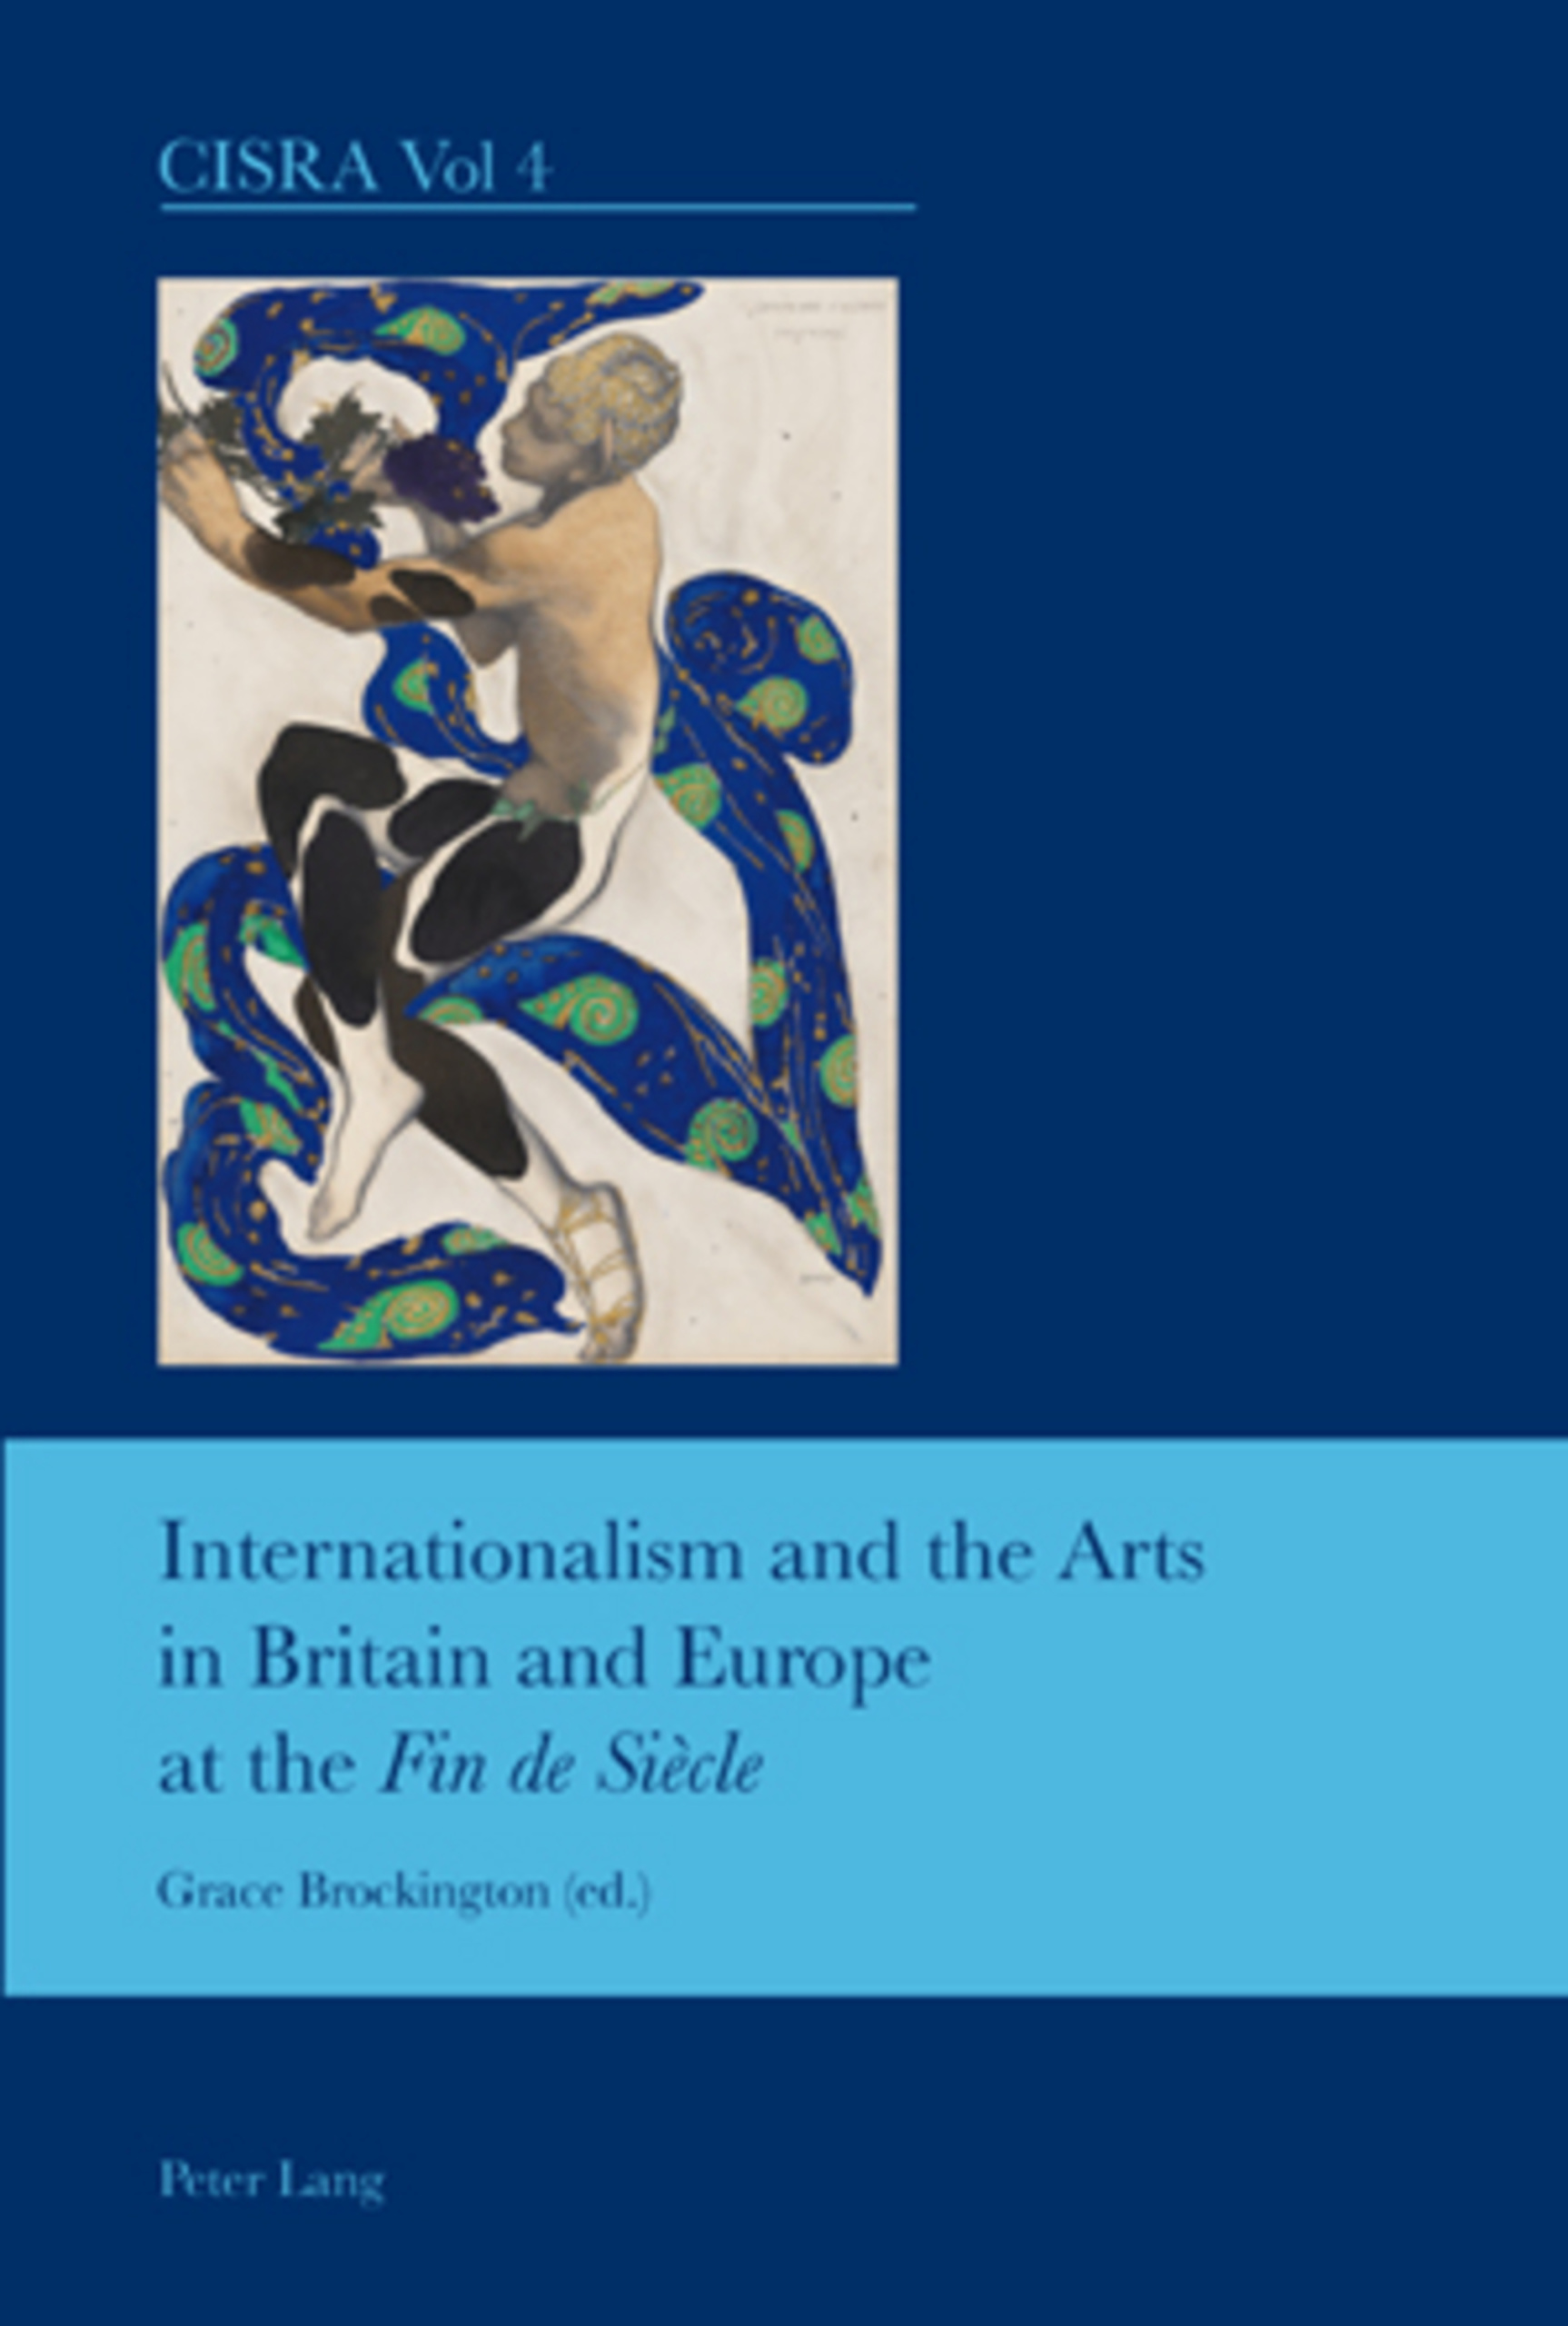 """Internationalism and the Arts in Britain and Europe at the """"Fin de Siècle"""" 